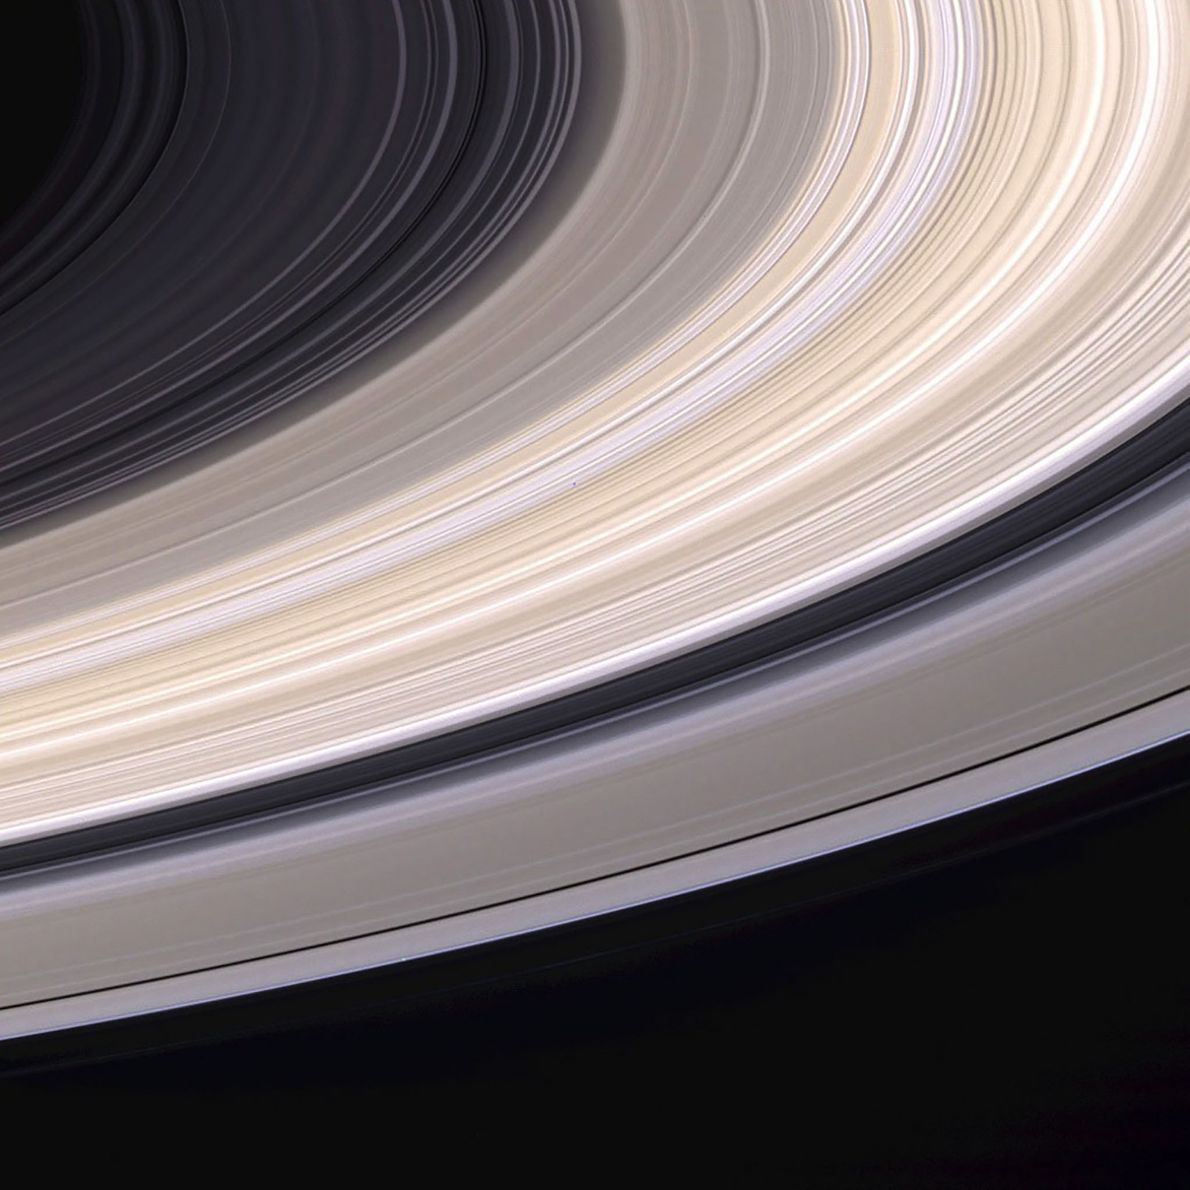 Nine days before it entered Saturn's orbit, Cassini captured this exquisite natural-color view of the planet's ...